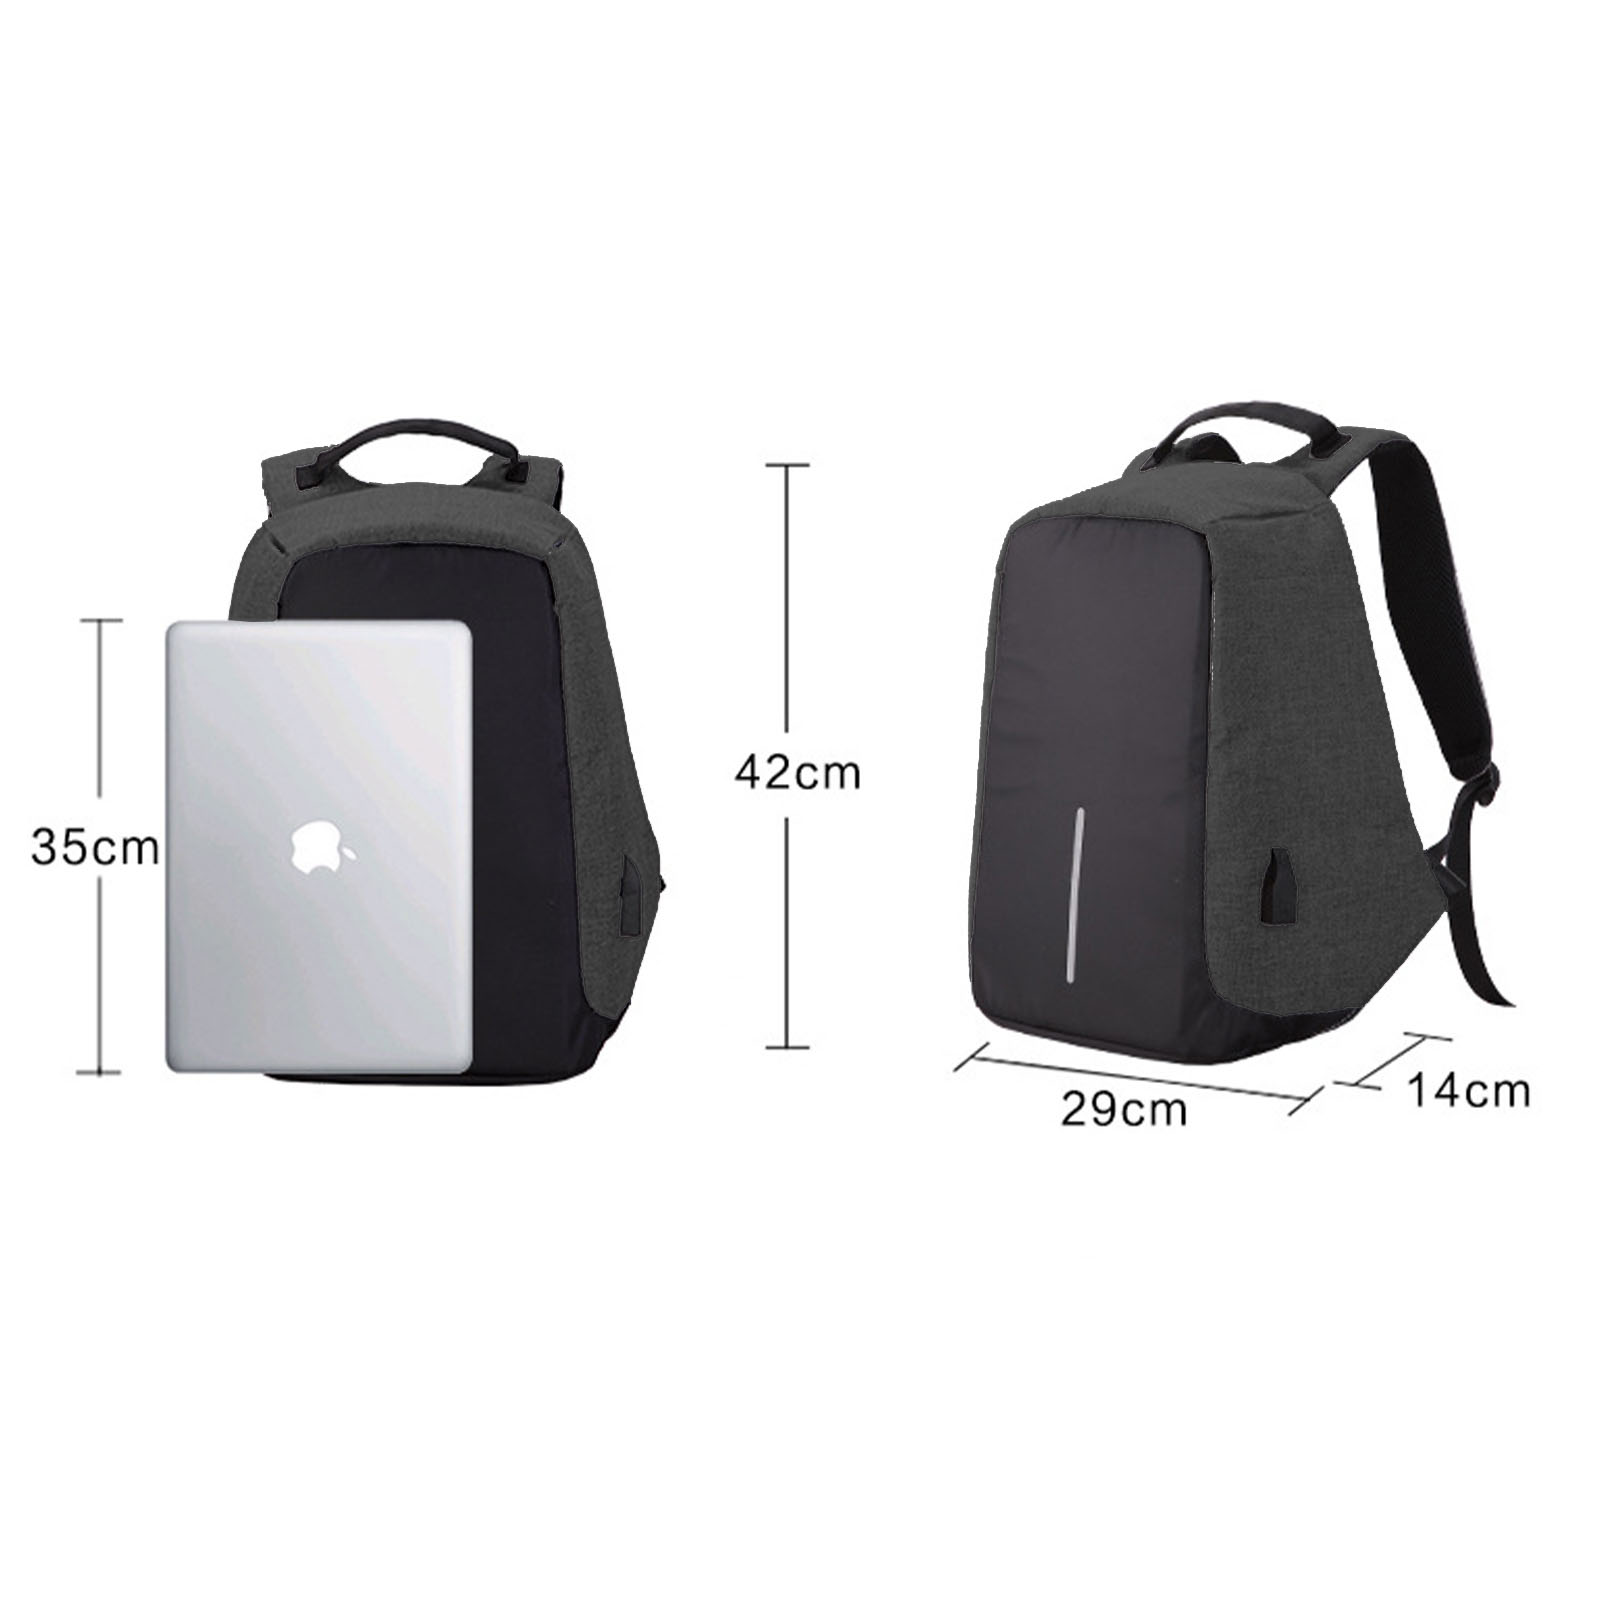 NEW-Anti-Theft-Backpack-Waterproof-bag-School-Travel-Laptop-Bags-USB-Charging